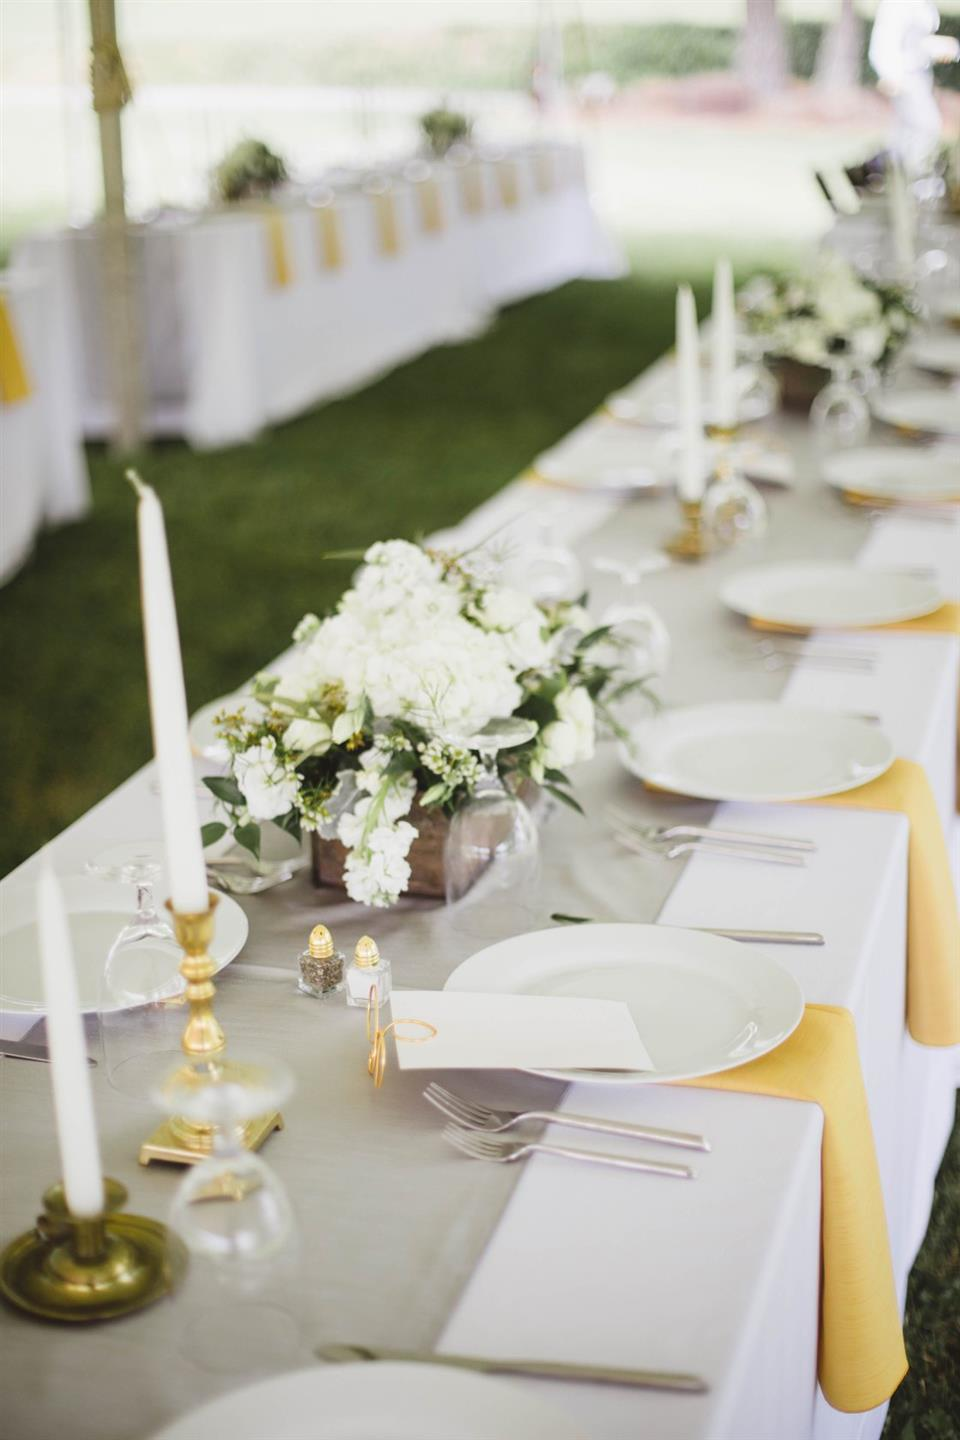 table place settings with flowers